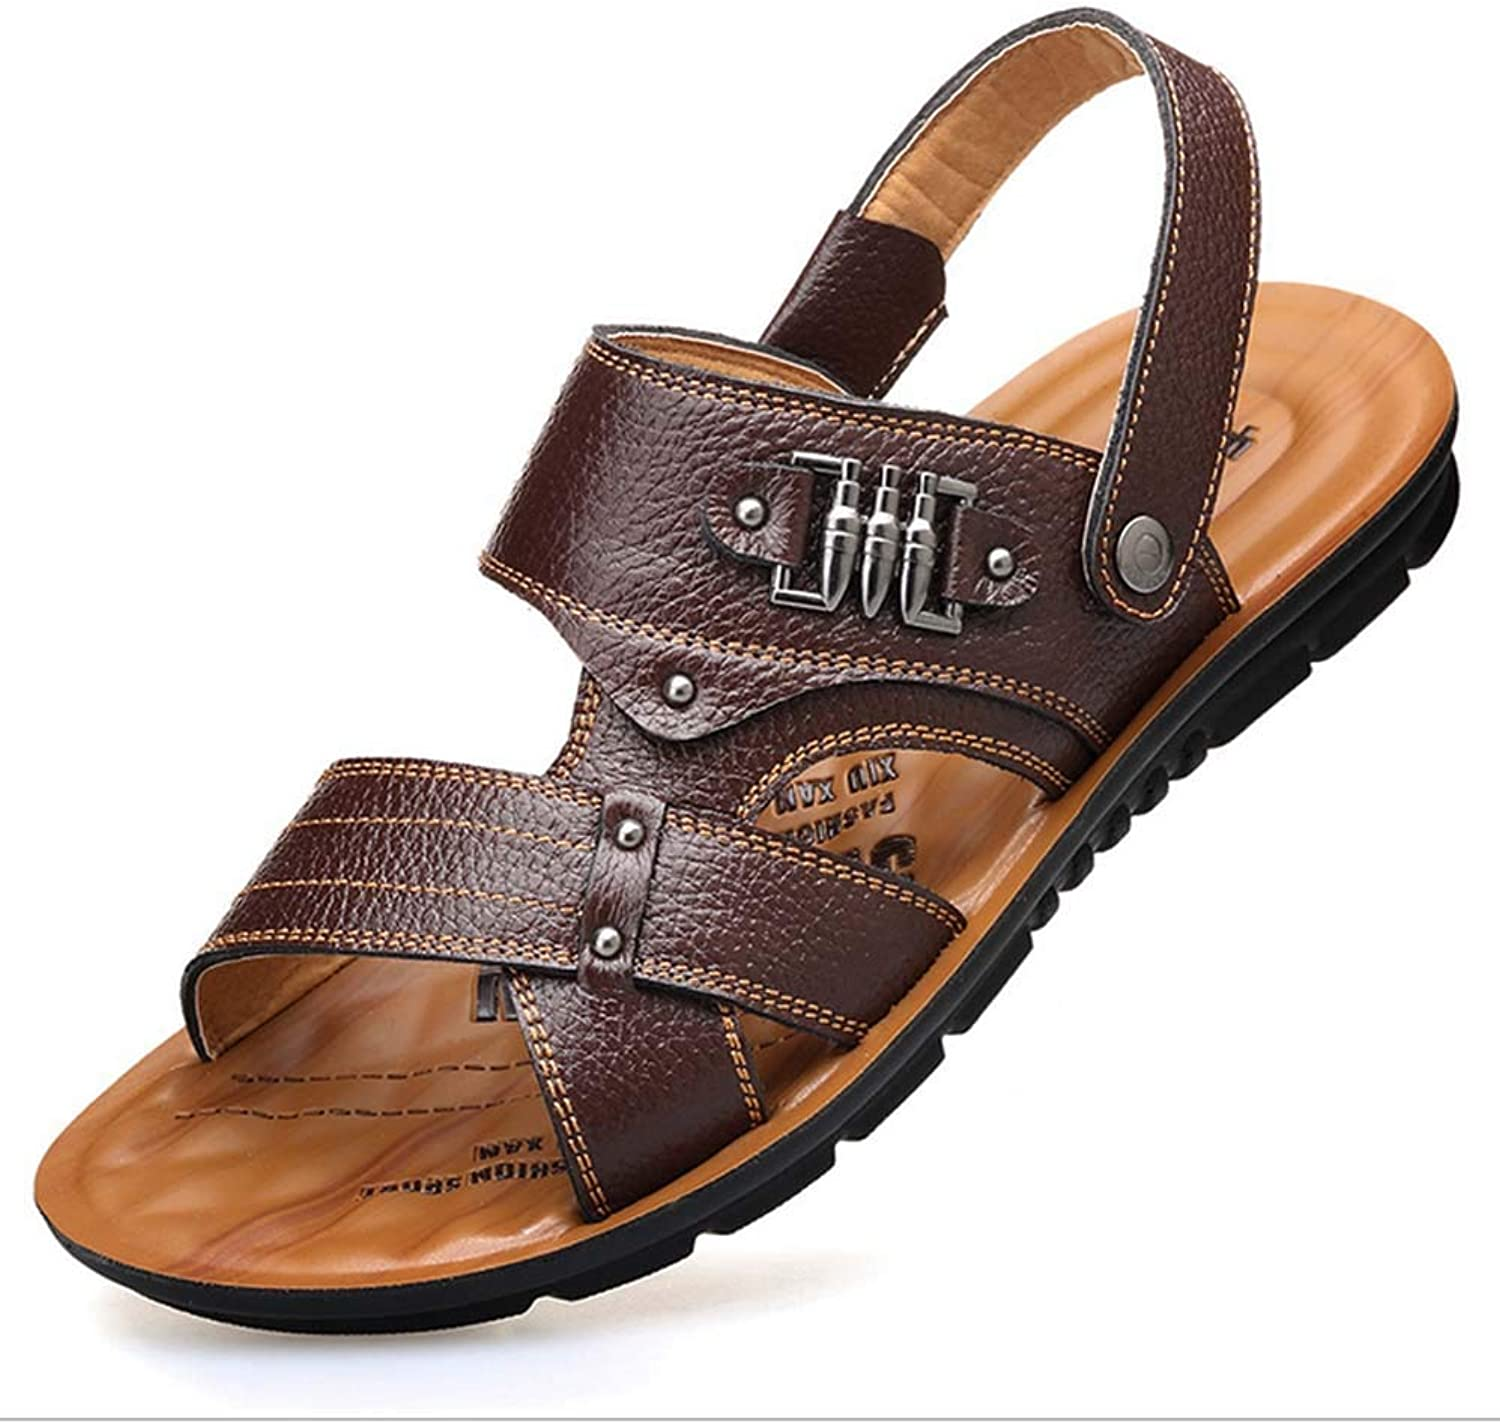 b81fbda9c2859 GHFJDO Men Casual open toe Leather Sandals,Summer Outdoor Fisherman ...